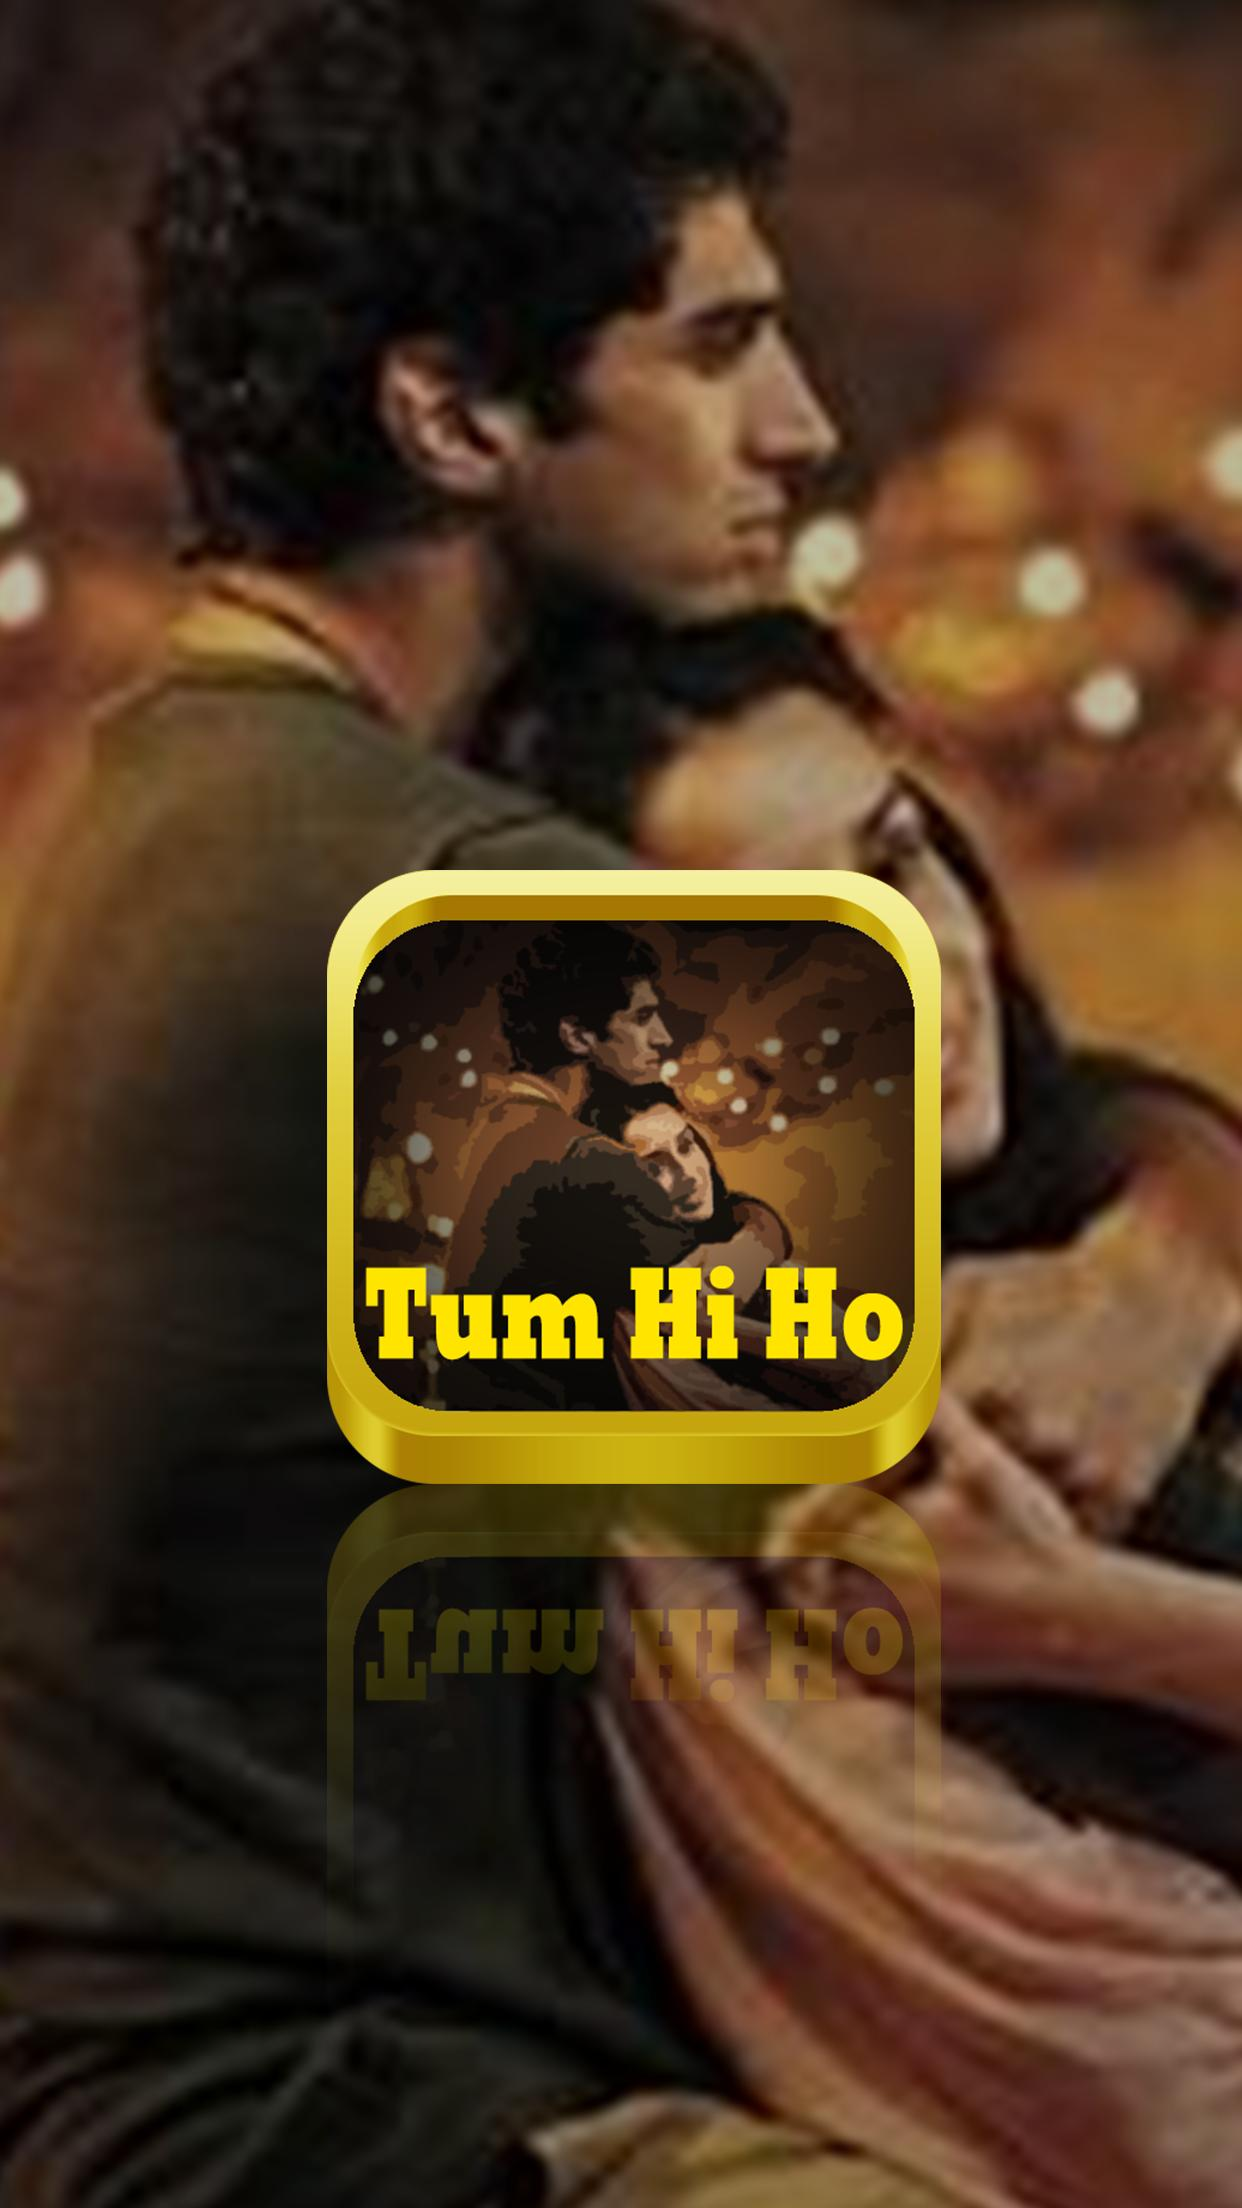 kyunki tum hi ho ab tum hi ho mp3 song free download